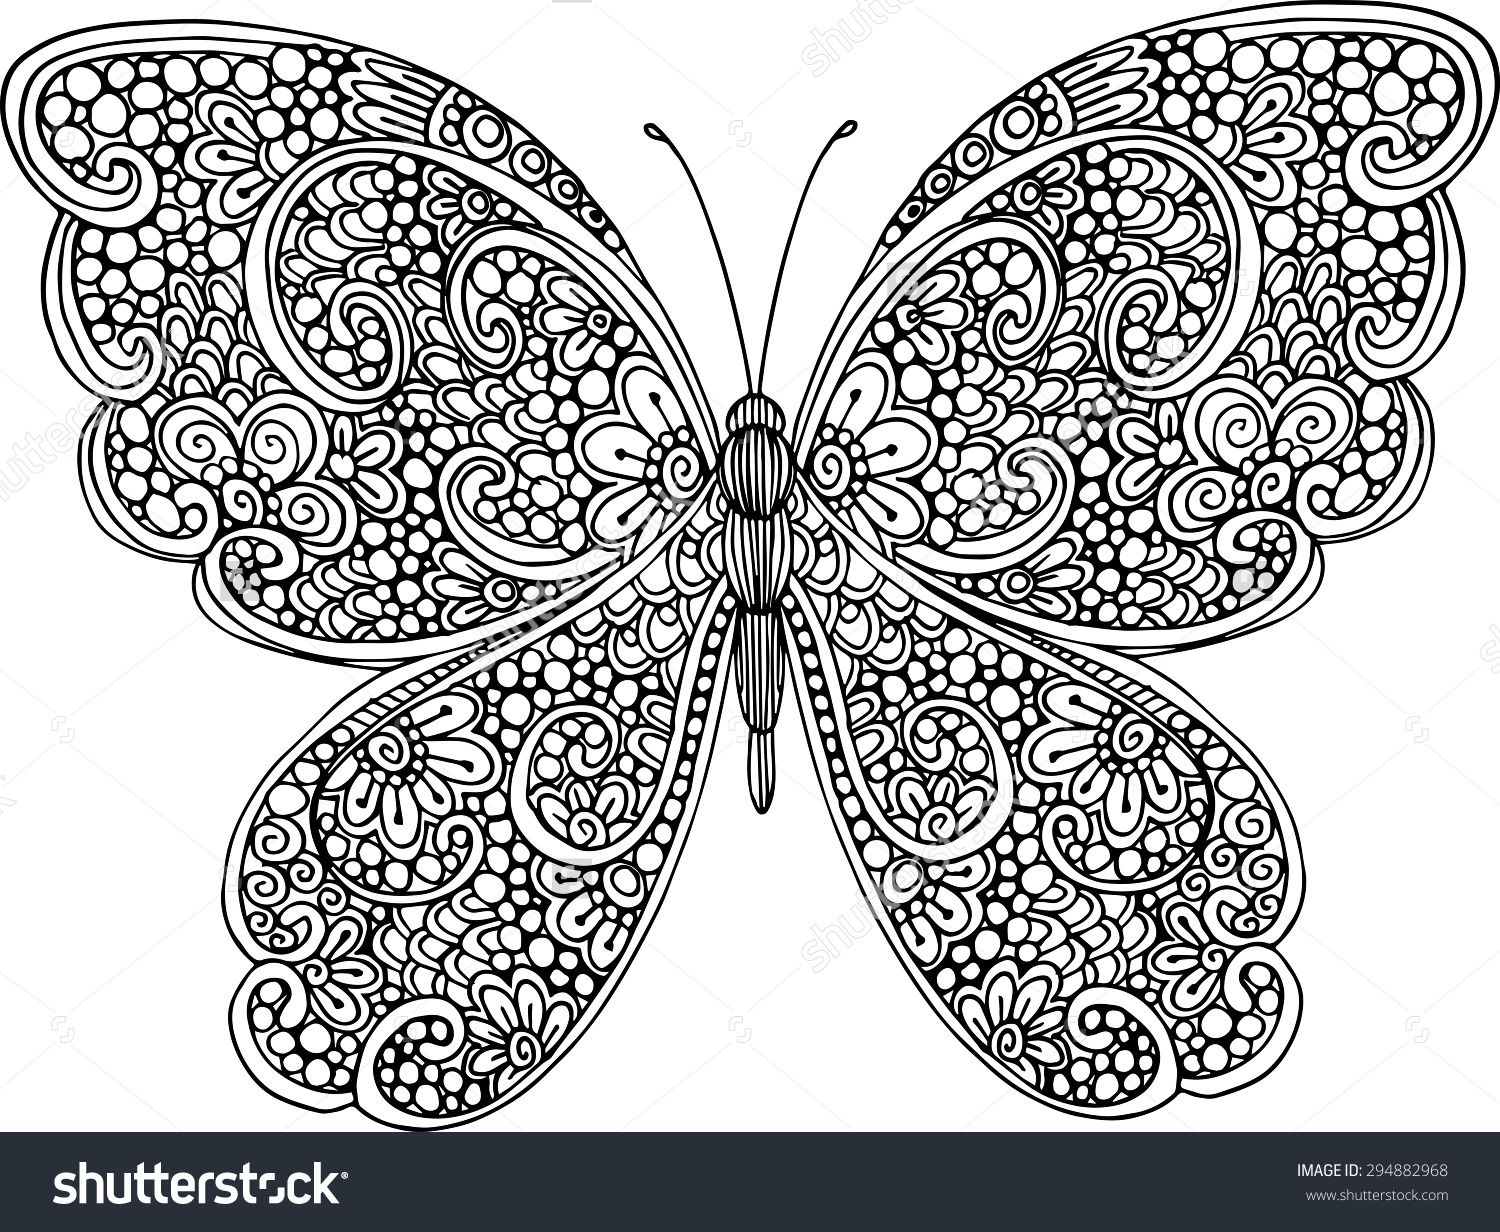 Hand Drawn Ornamental Butterfly Outline Illustration With Decorative Ornaments Butterfly Coloring Page Mandala Coloring Pages Pattern Coloring Pages